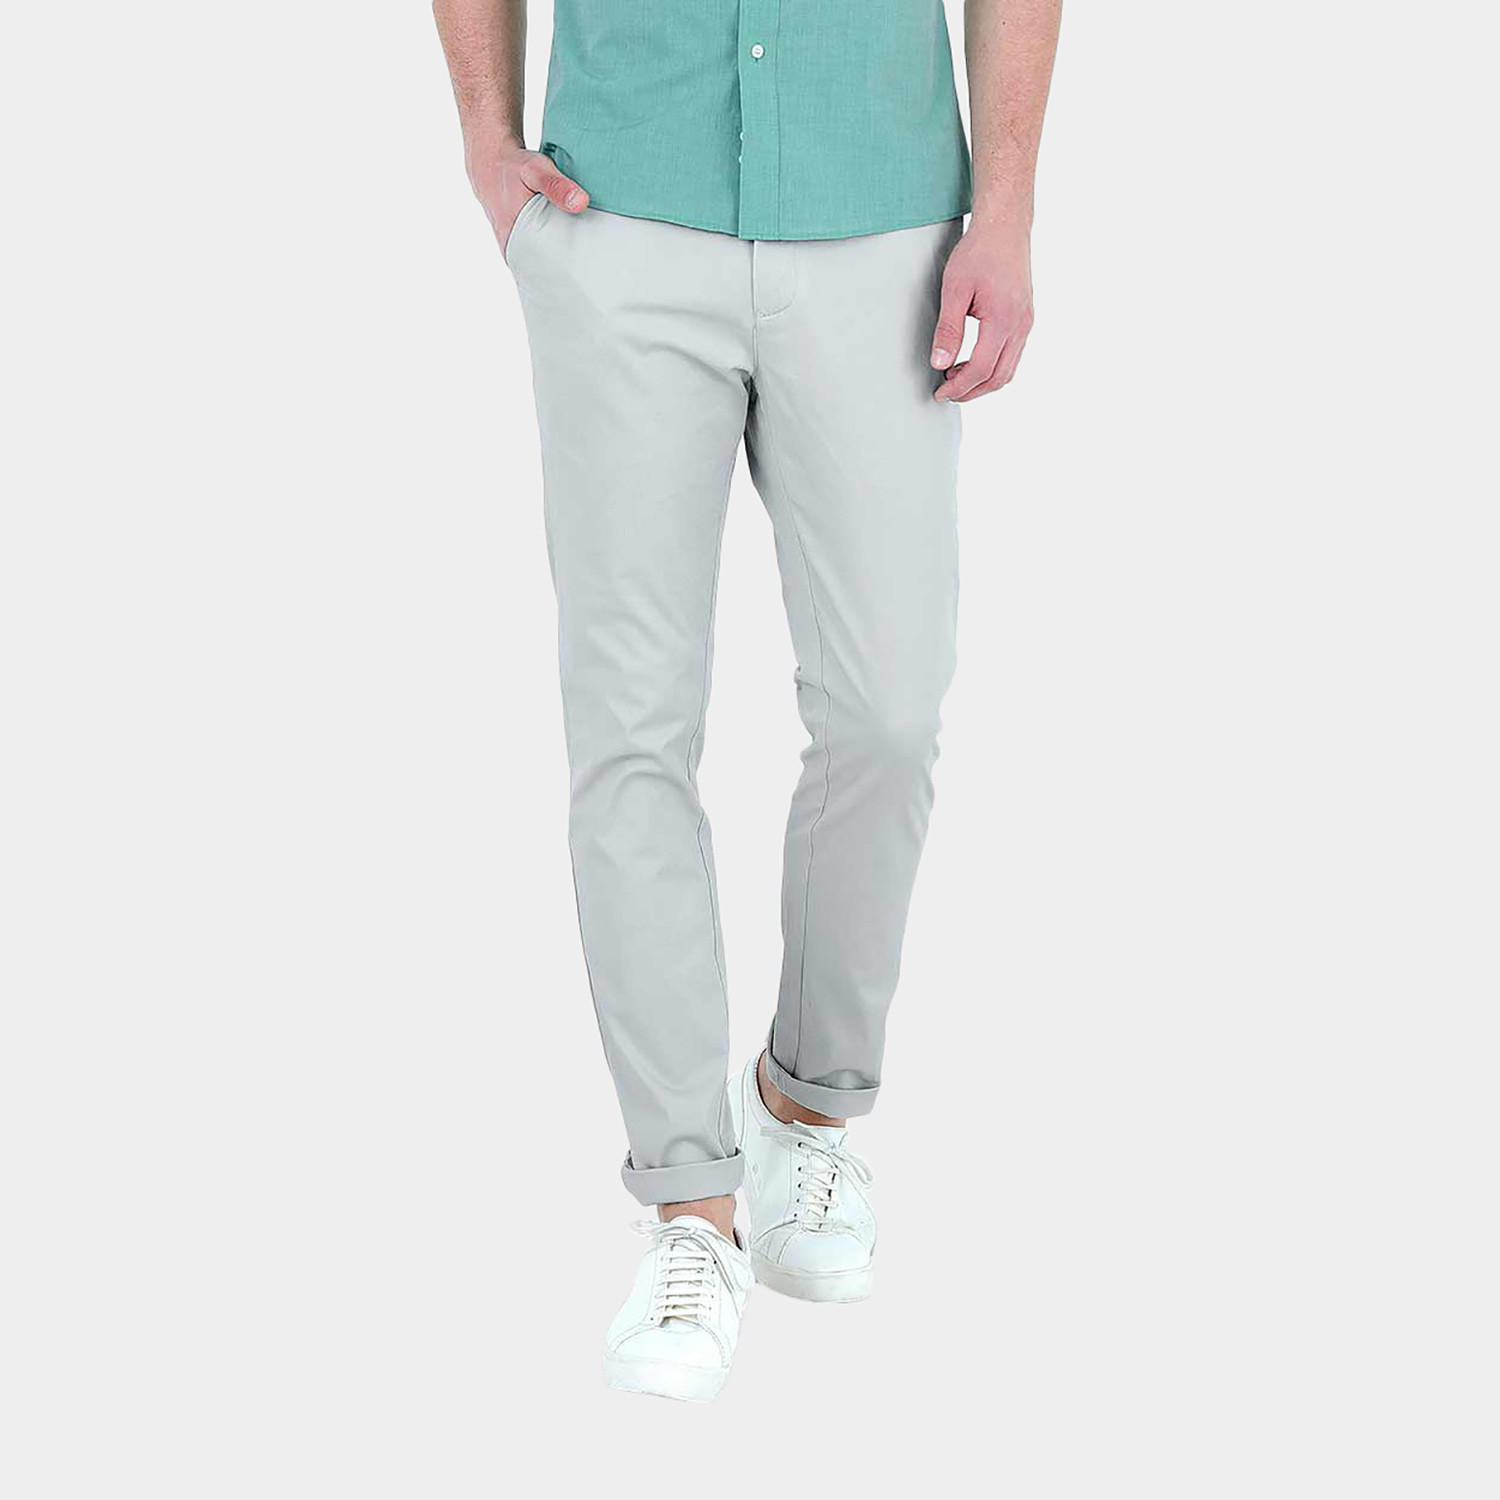 21a2ace69d Chino // Light Grey (M) - Fashion Clearance - Touch of Modern